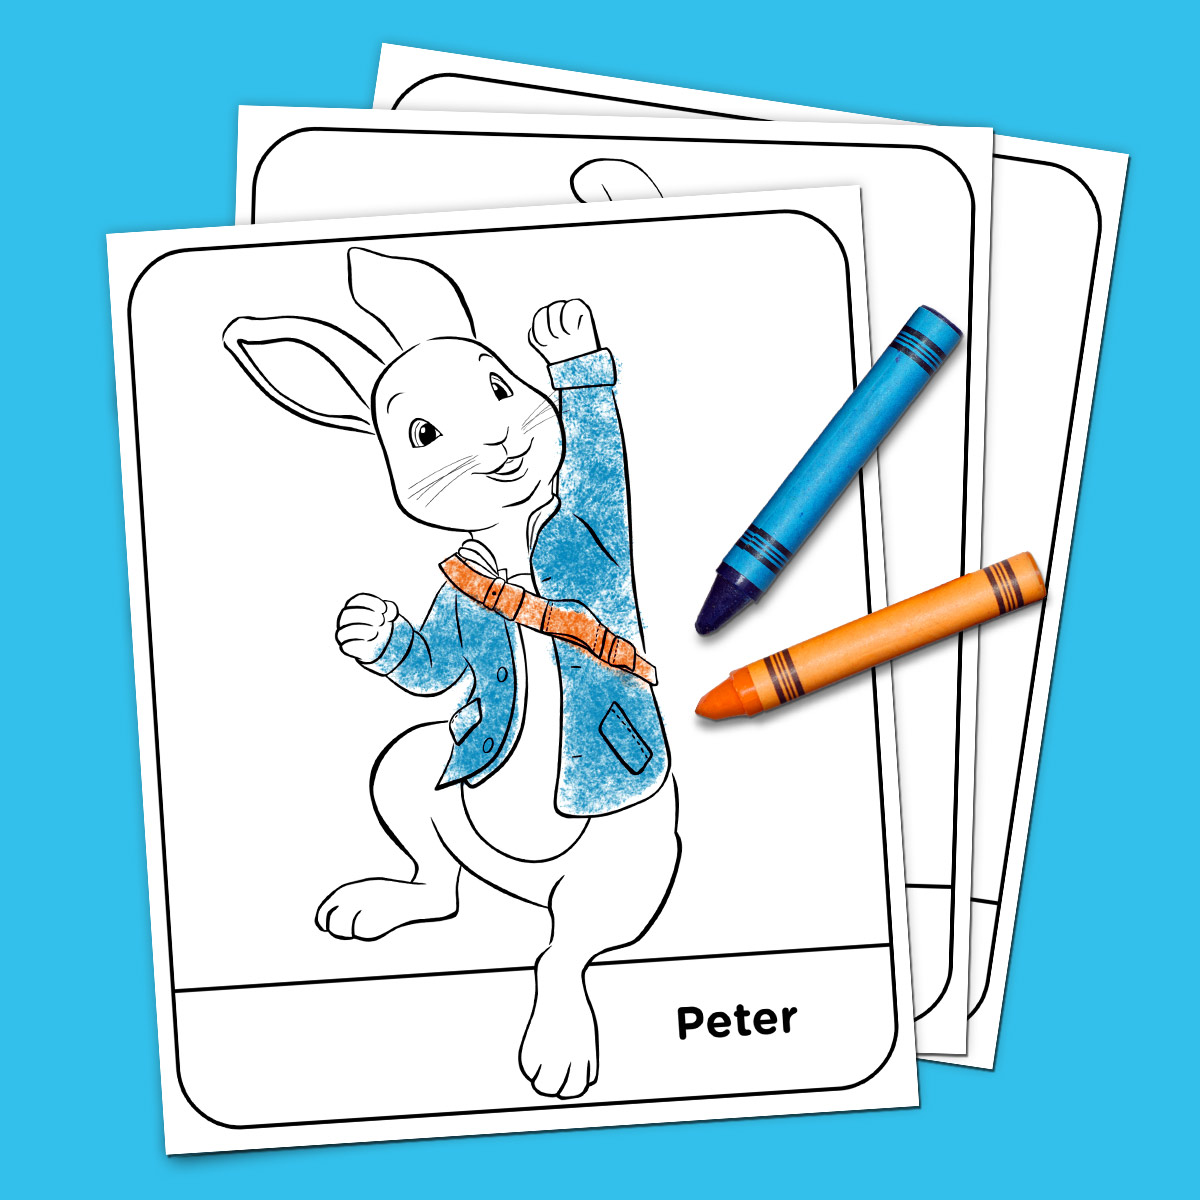 Peter Rabbit Coloring Pages Peter Rabbit Coloring Pack  Nickelodeon Parents